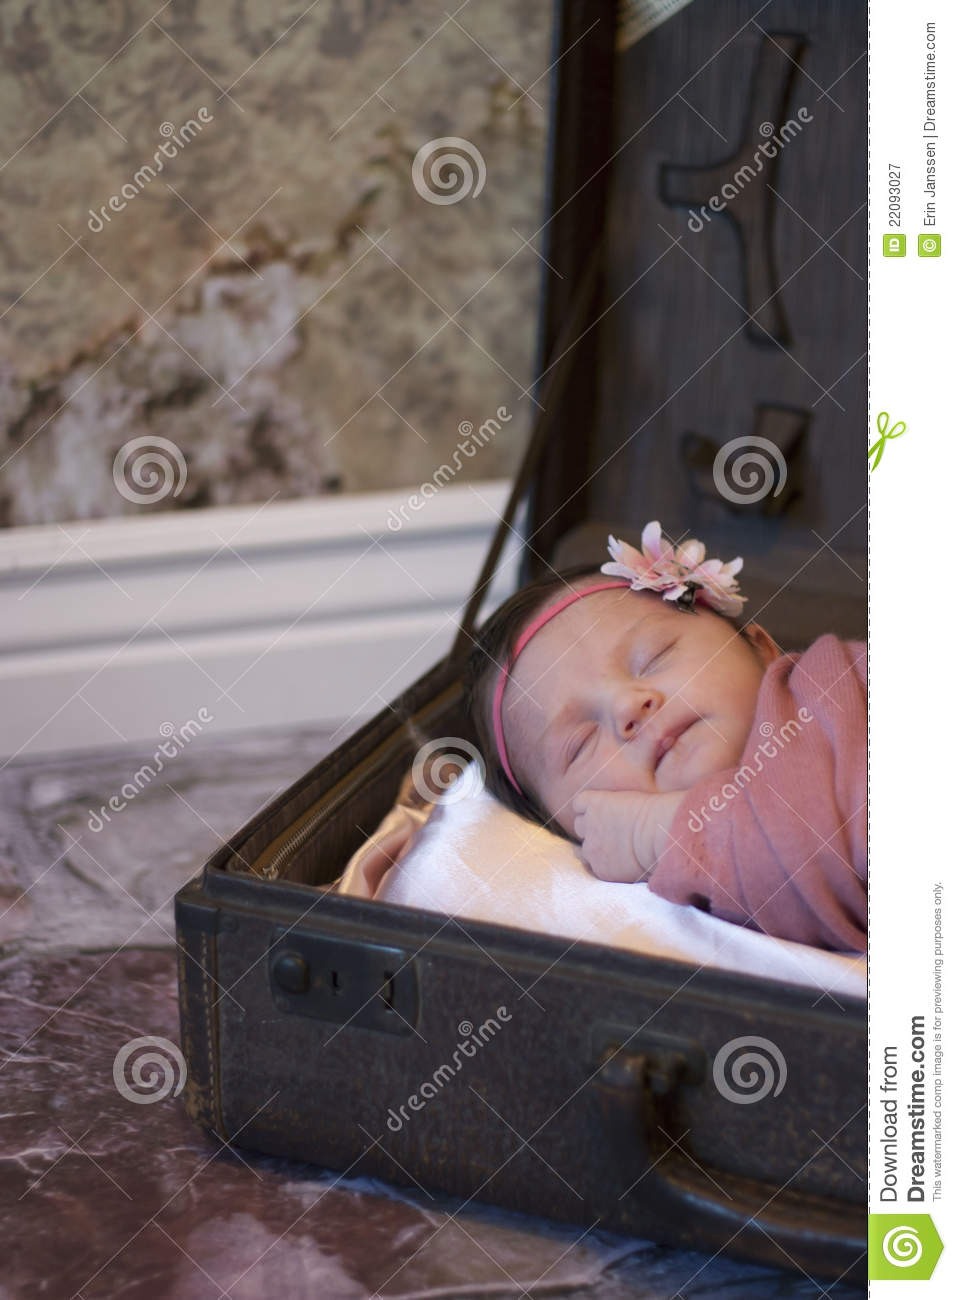 Newborn Baby Girl Wallpaper Newborn Baby Girl In Suitcase Stock Image Image 22093027